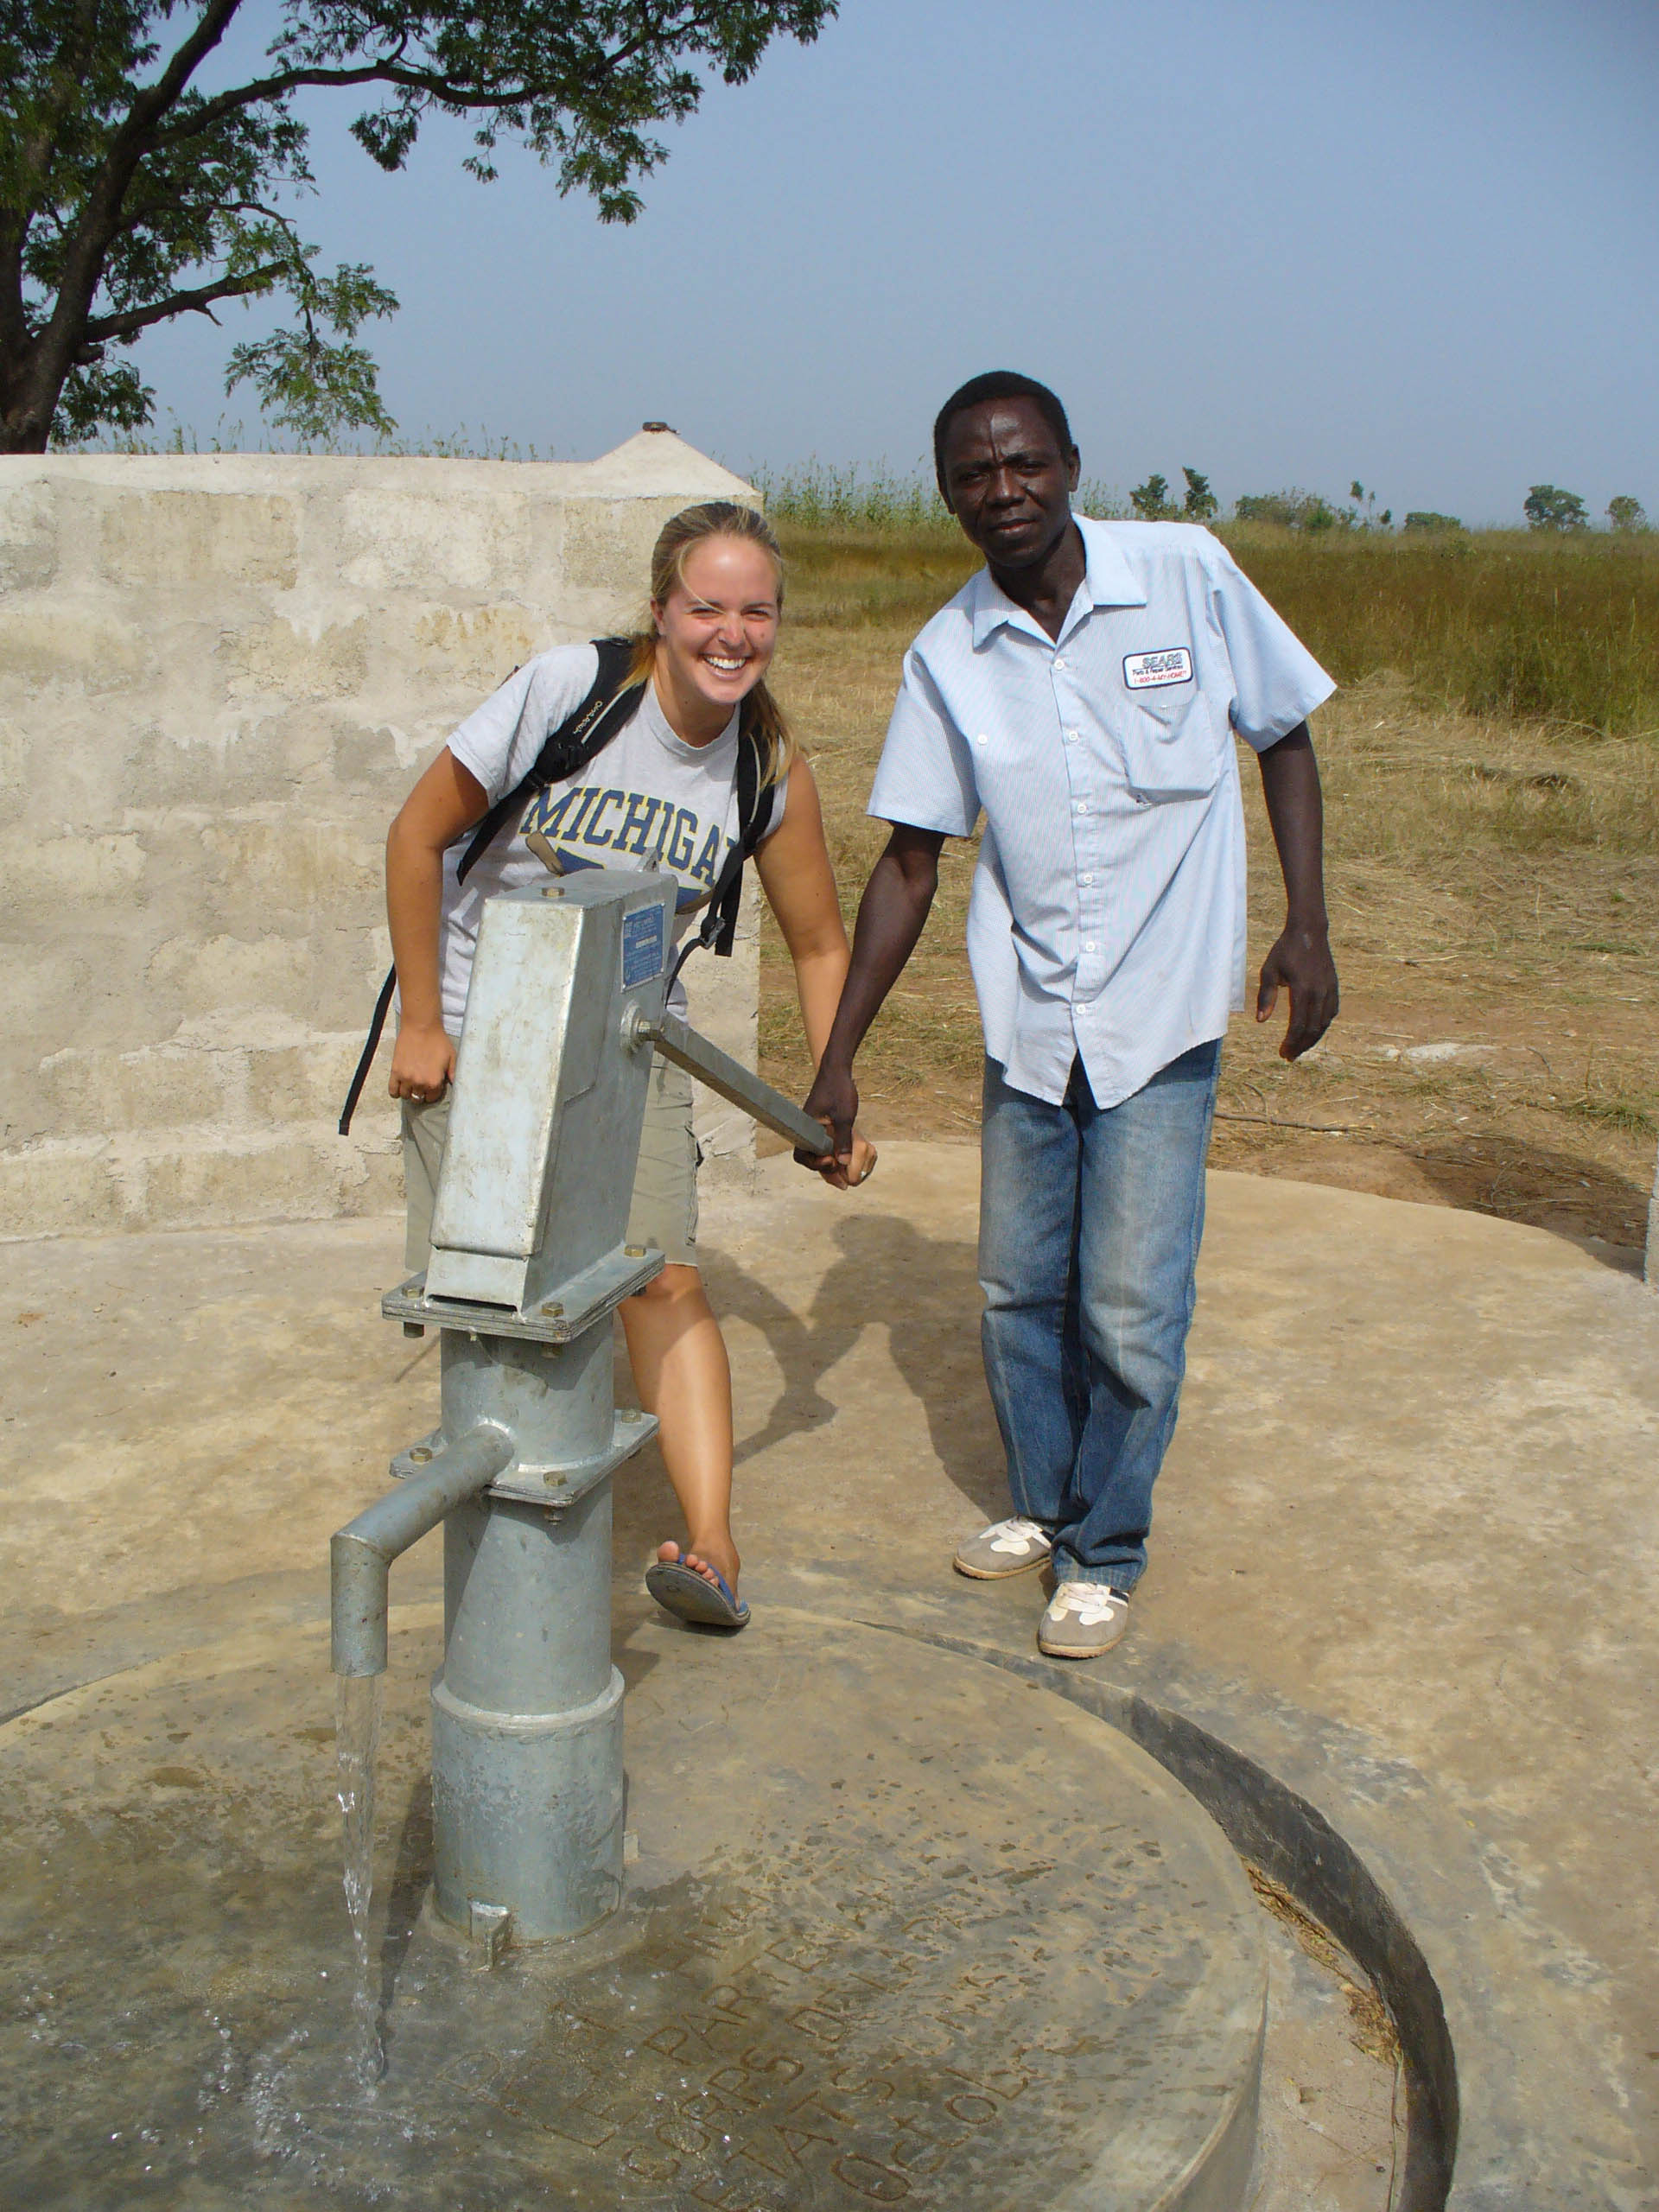 Posing with one of her water pumps.